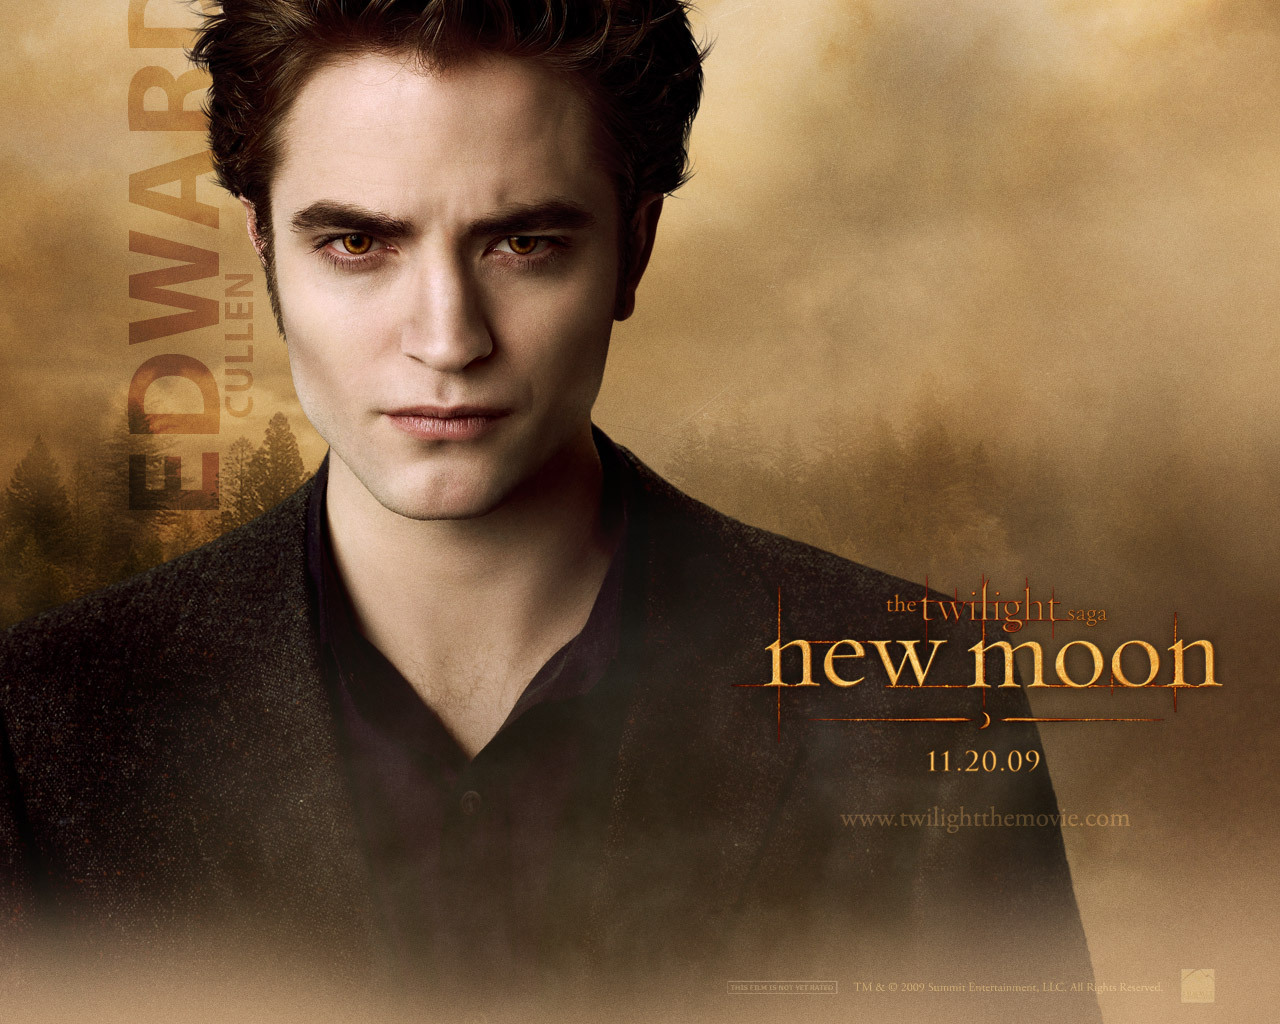 Wallpapers Background Robert Pattinson Edward Cullen